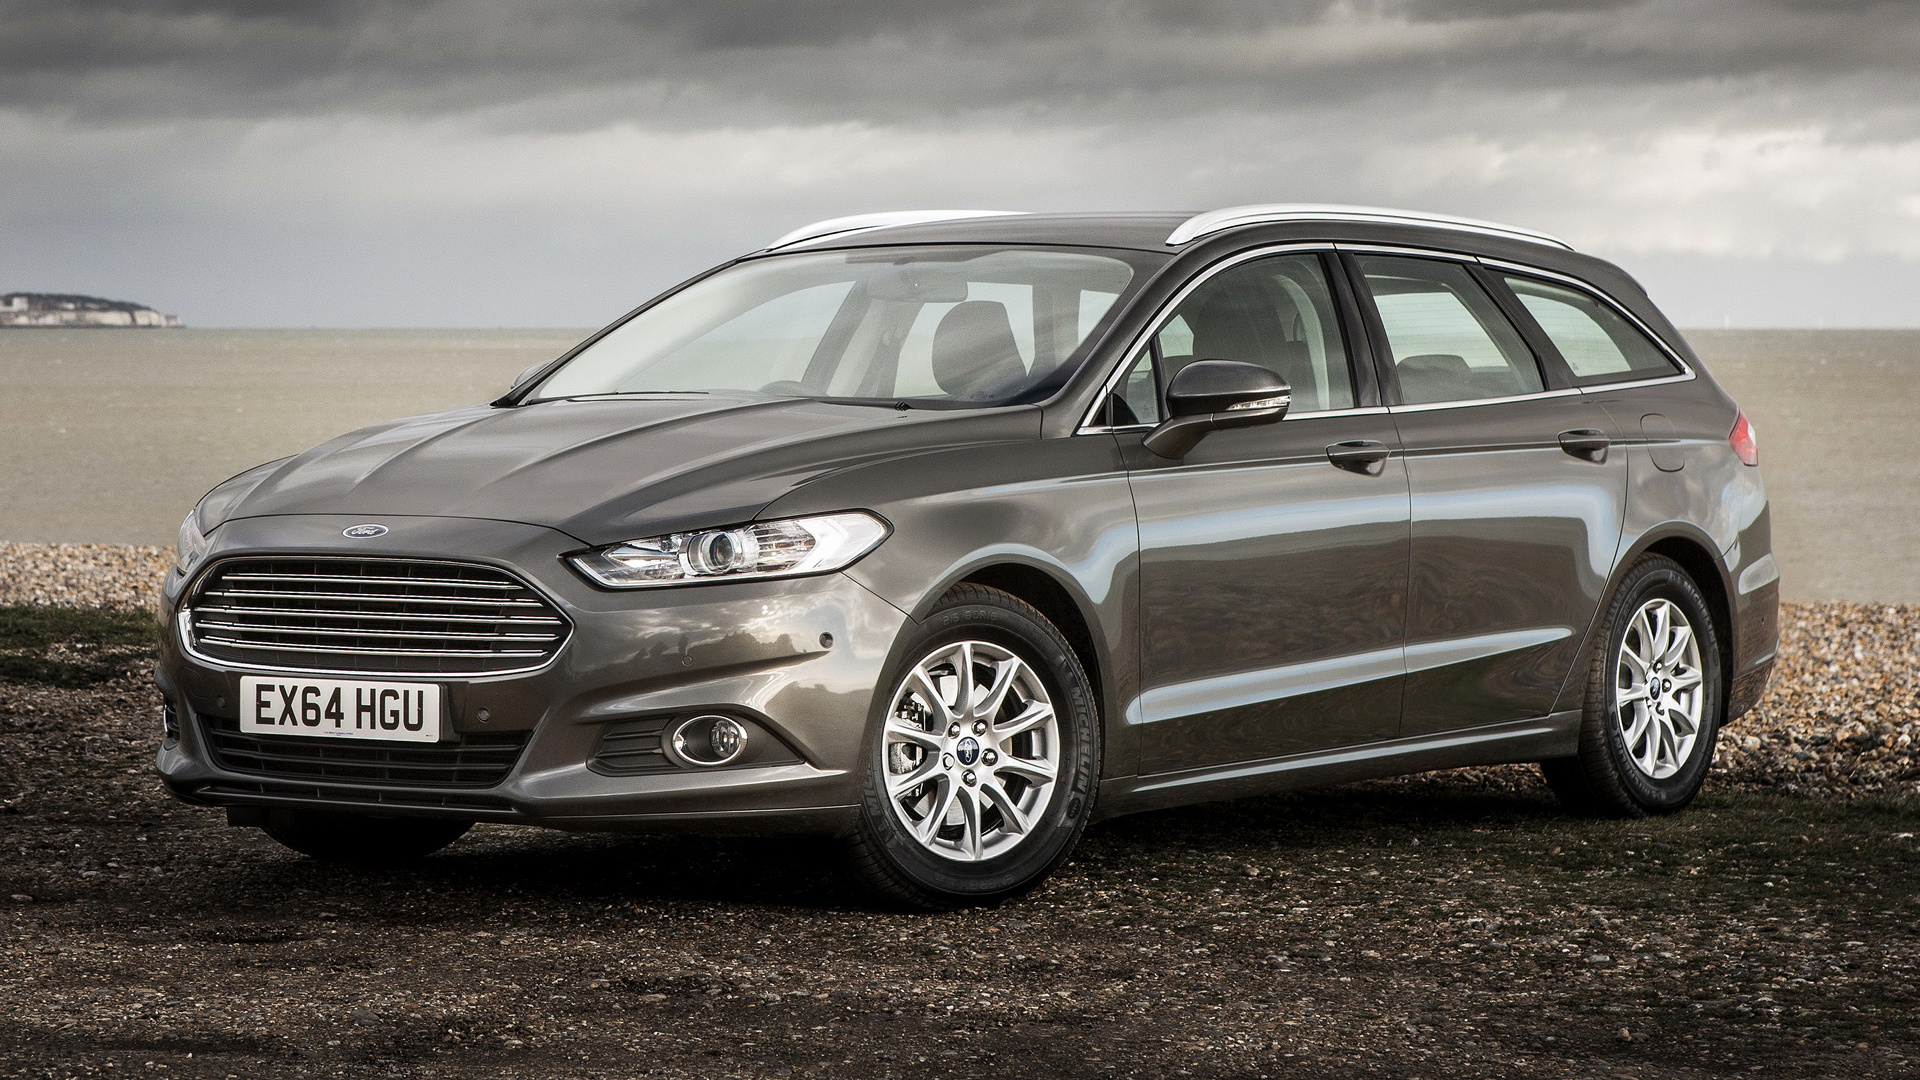 Ford Mondeo Wallpaper 17   1920 X 1080 stmednet 1920x1080